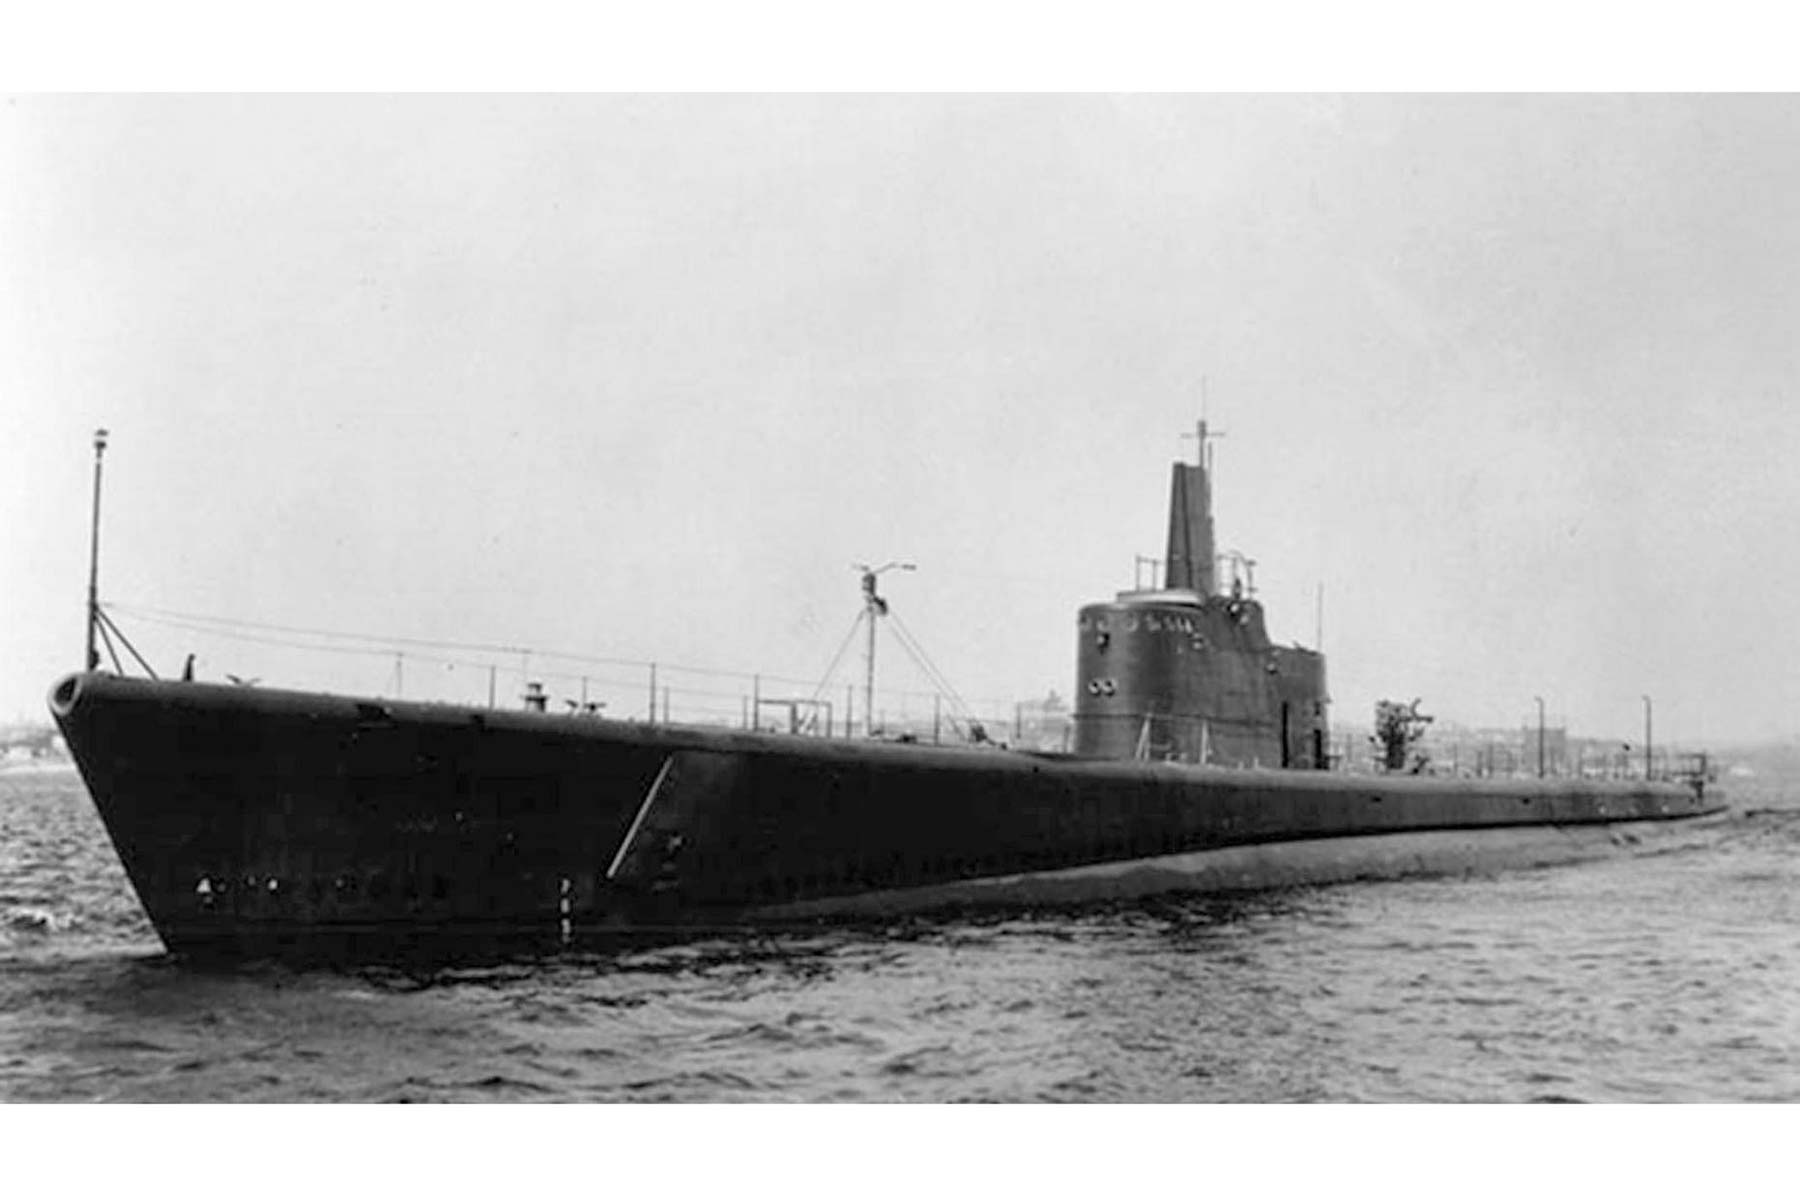 Bow of WWII US Submarine Discovered Near Remote Alaskan Island